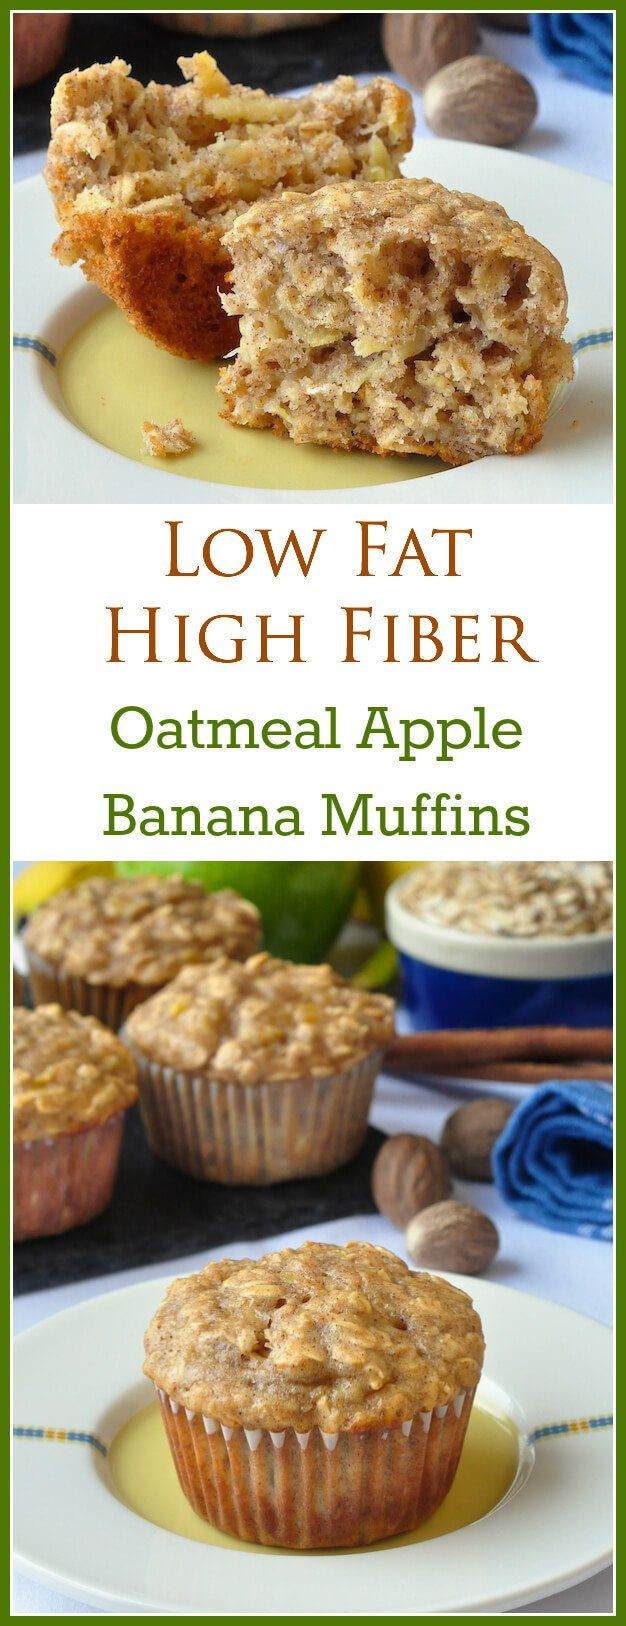 Low Fat Breakfast Recipes  26 best images about Make again recipes on Pinterest